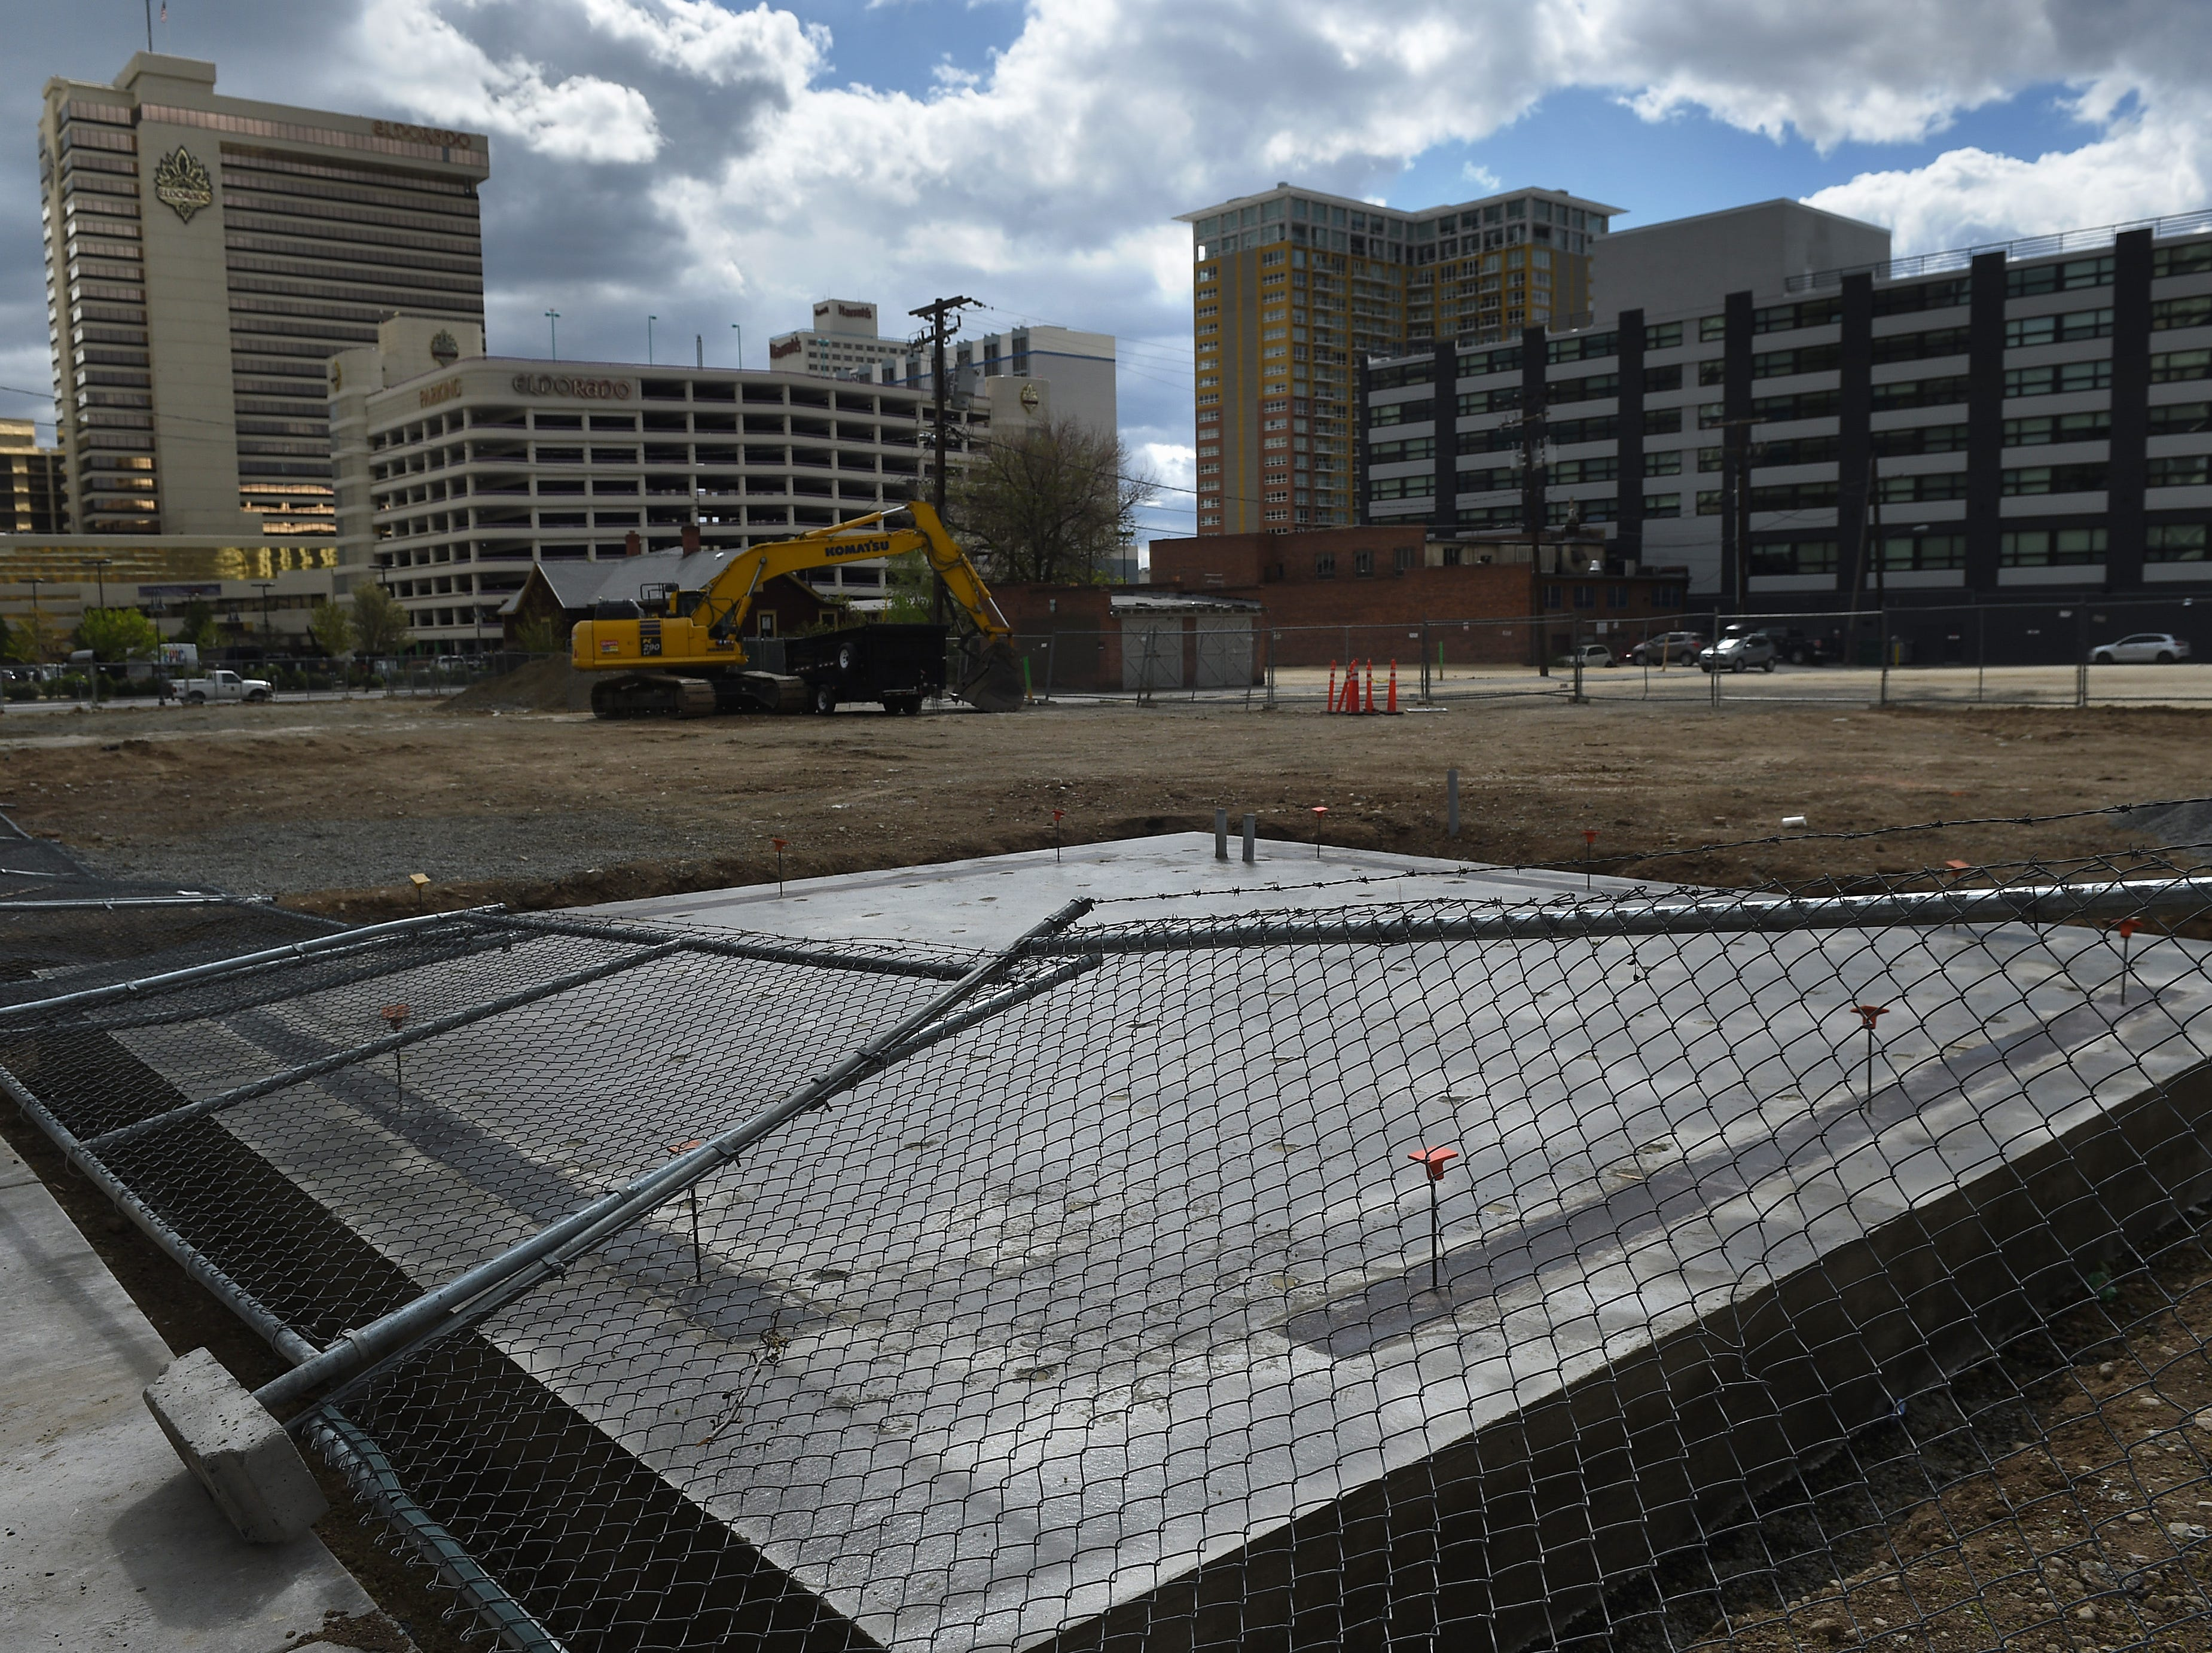 A concrete slab intended for a sculpture garden is seen in Reno on April 30, 2019.